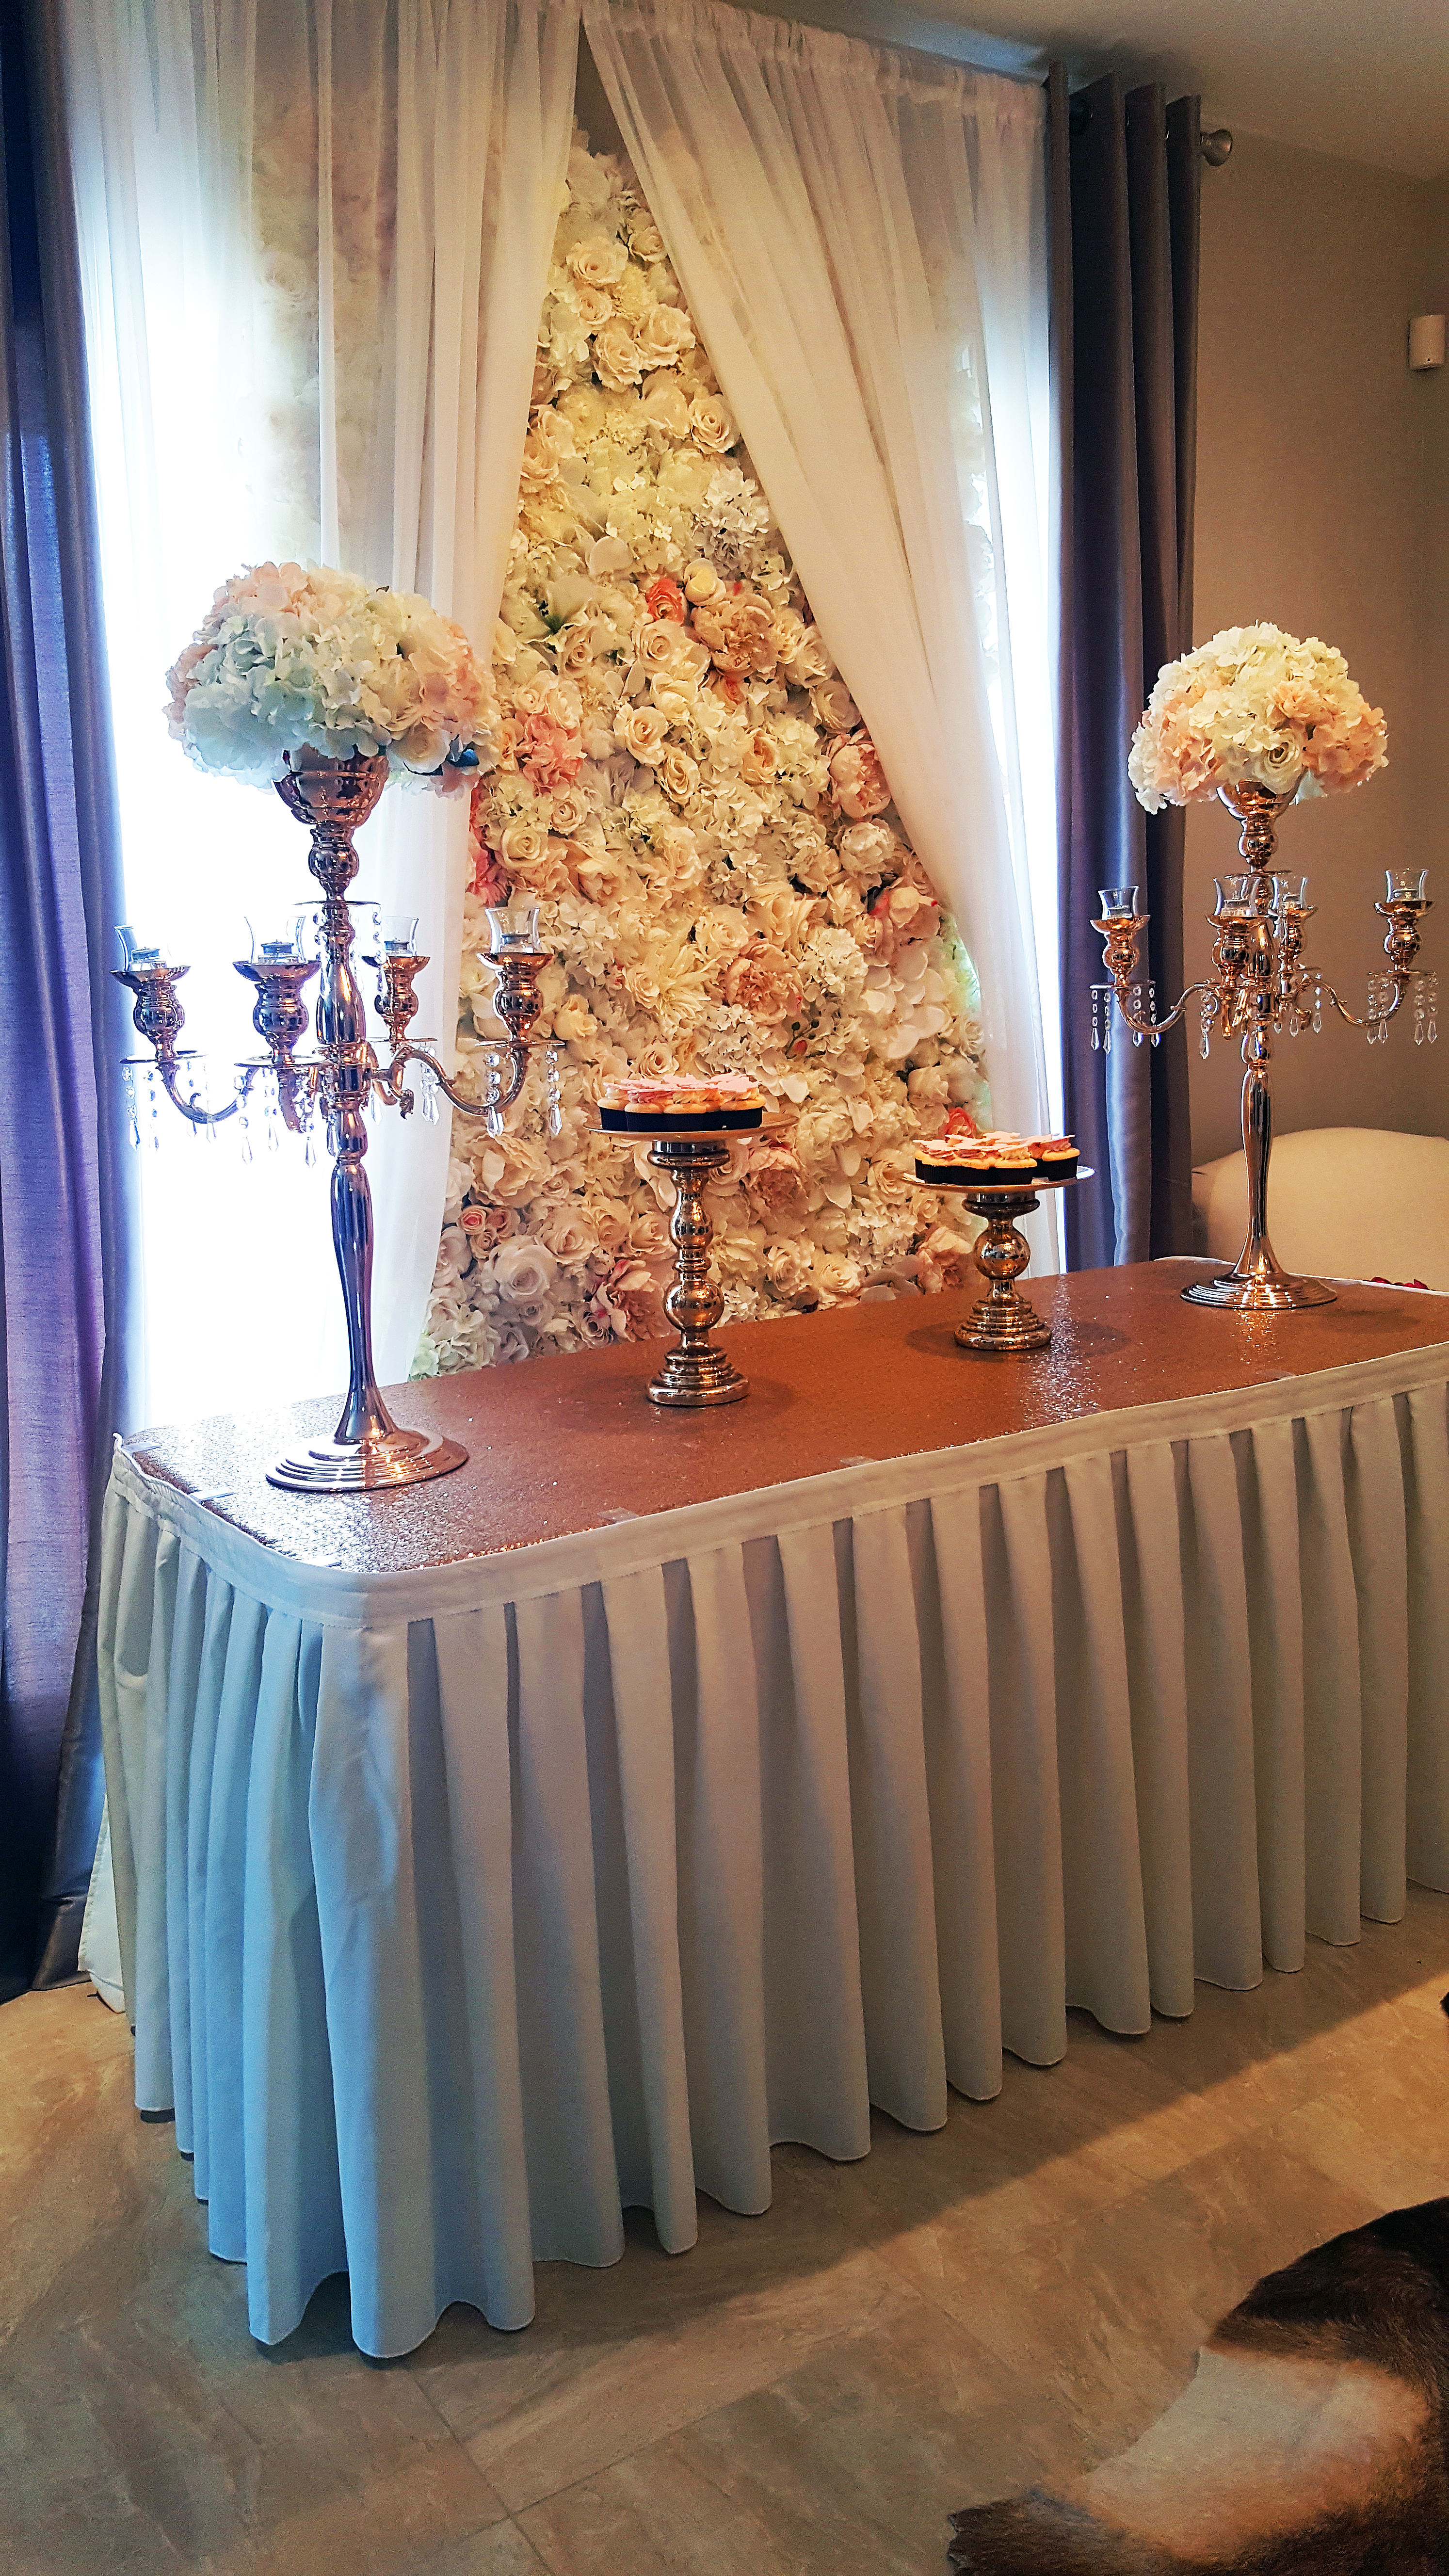 Jupes De Table Montreal Glam Location Decor